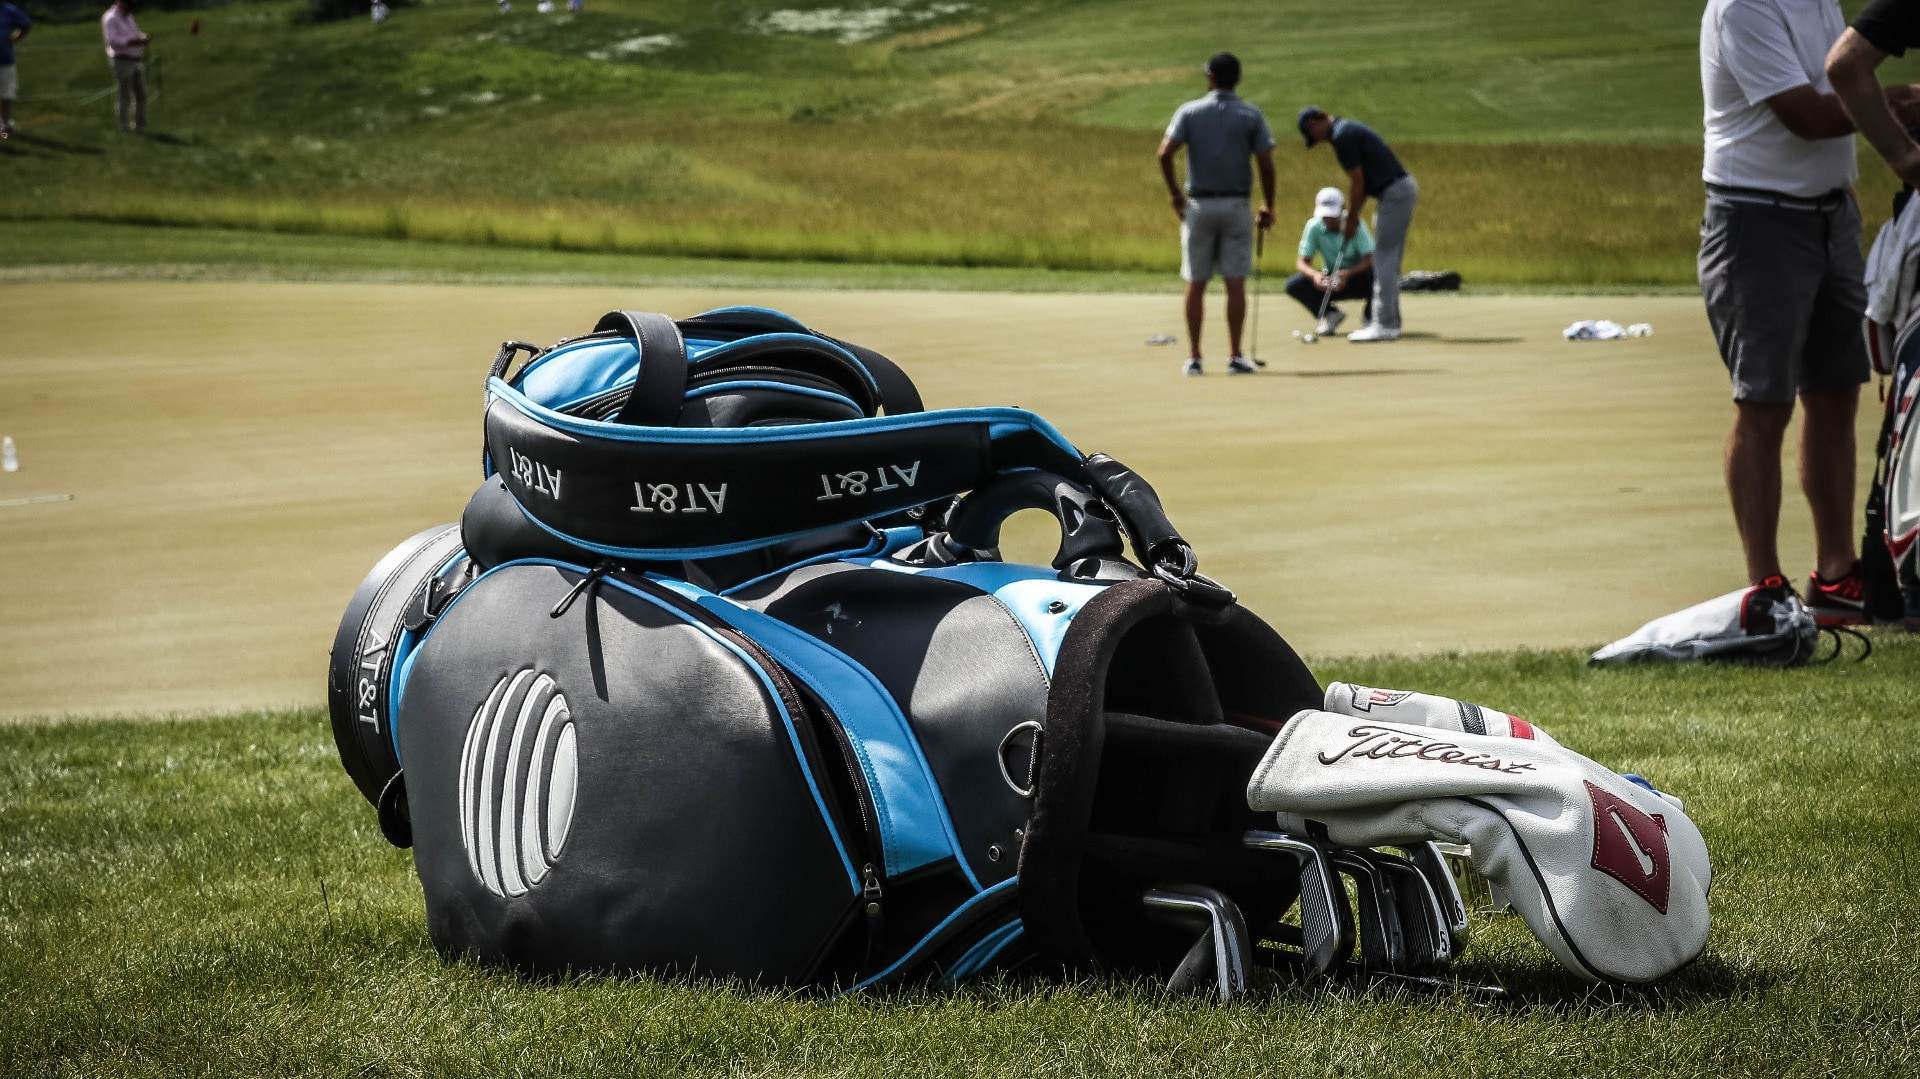 Jordan practices as his bag full of Titleist equip...